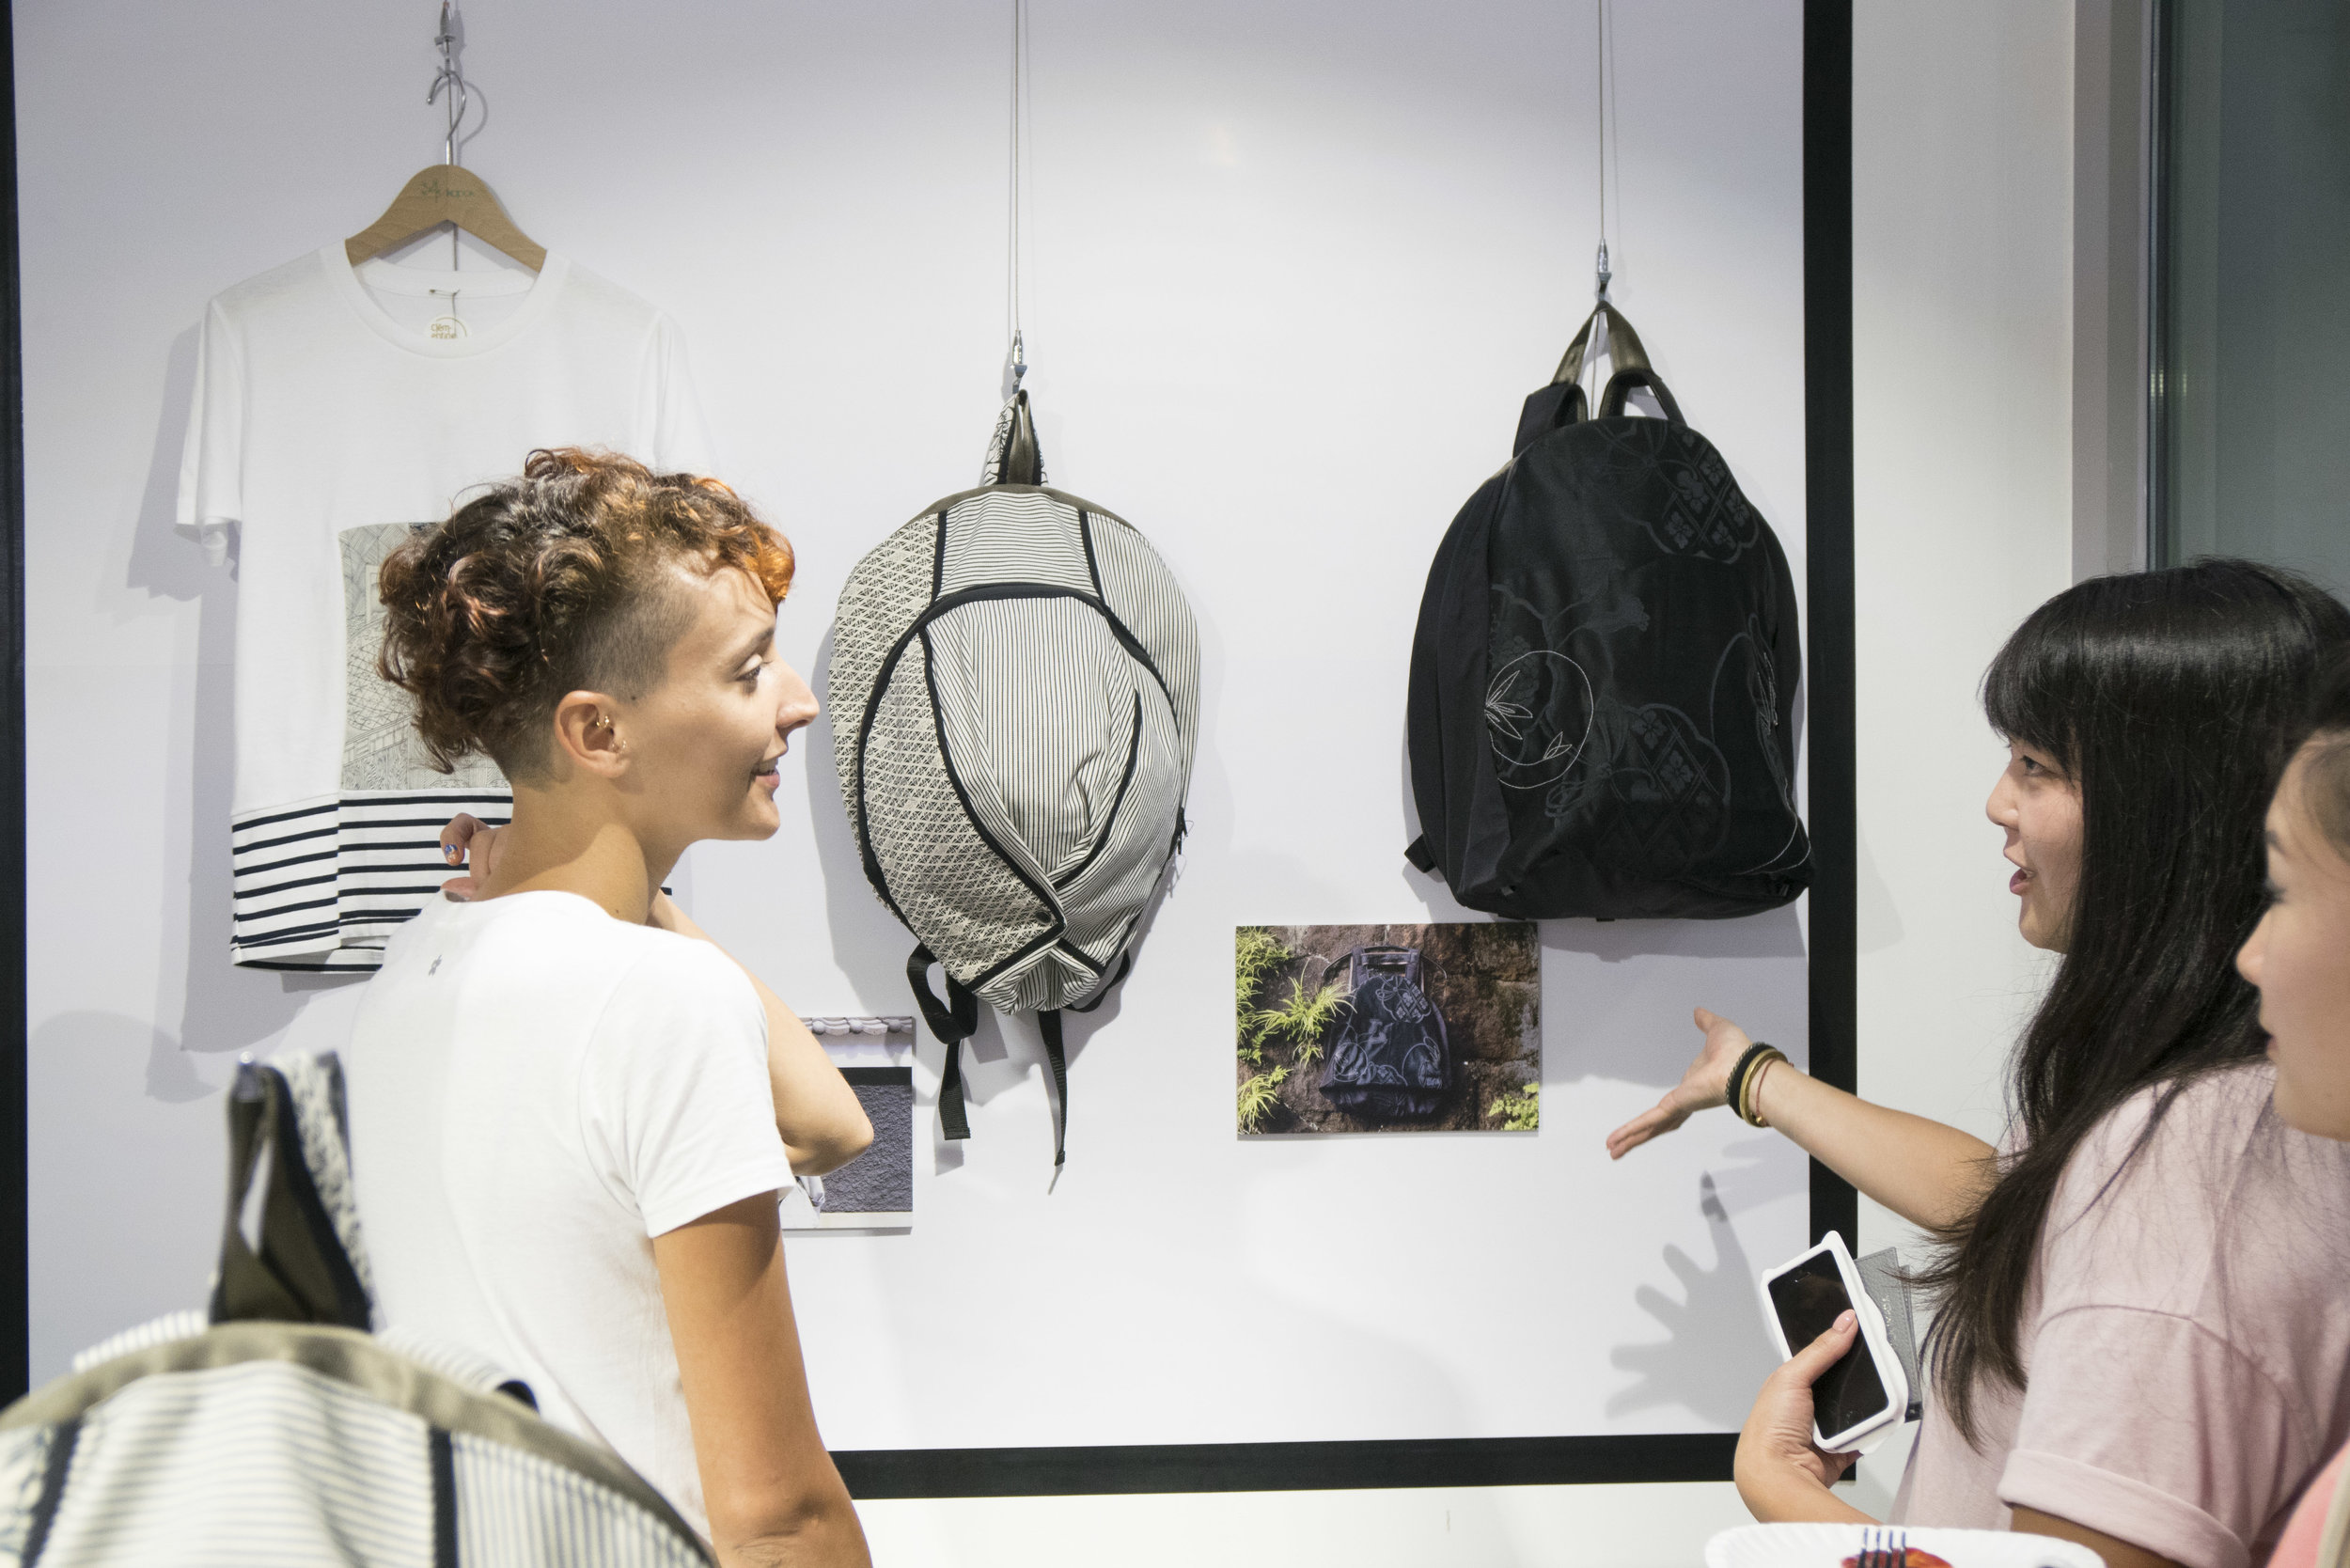 kapok x The EcoChic Design Award Alumni prize sustainable showcase launch event_Aug 11_Clementine Sandner31.JPG